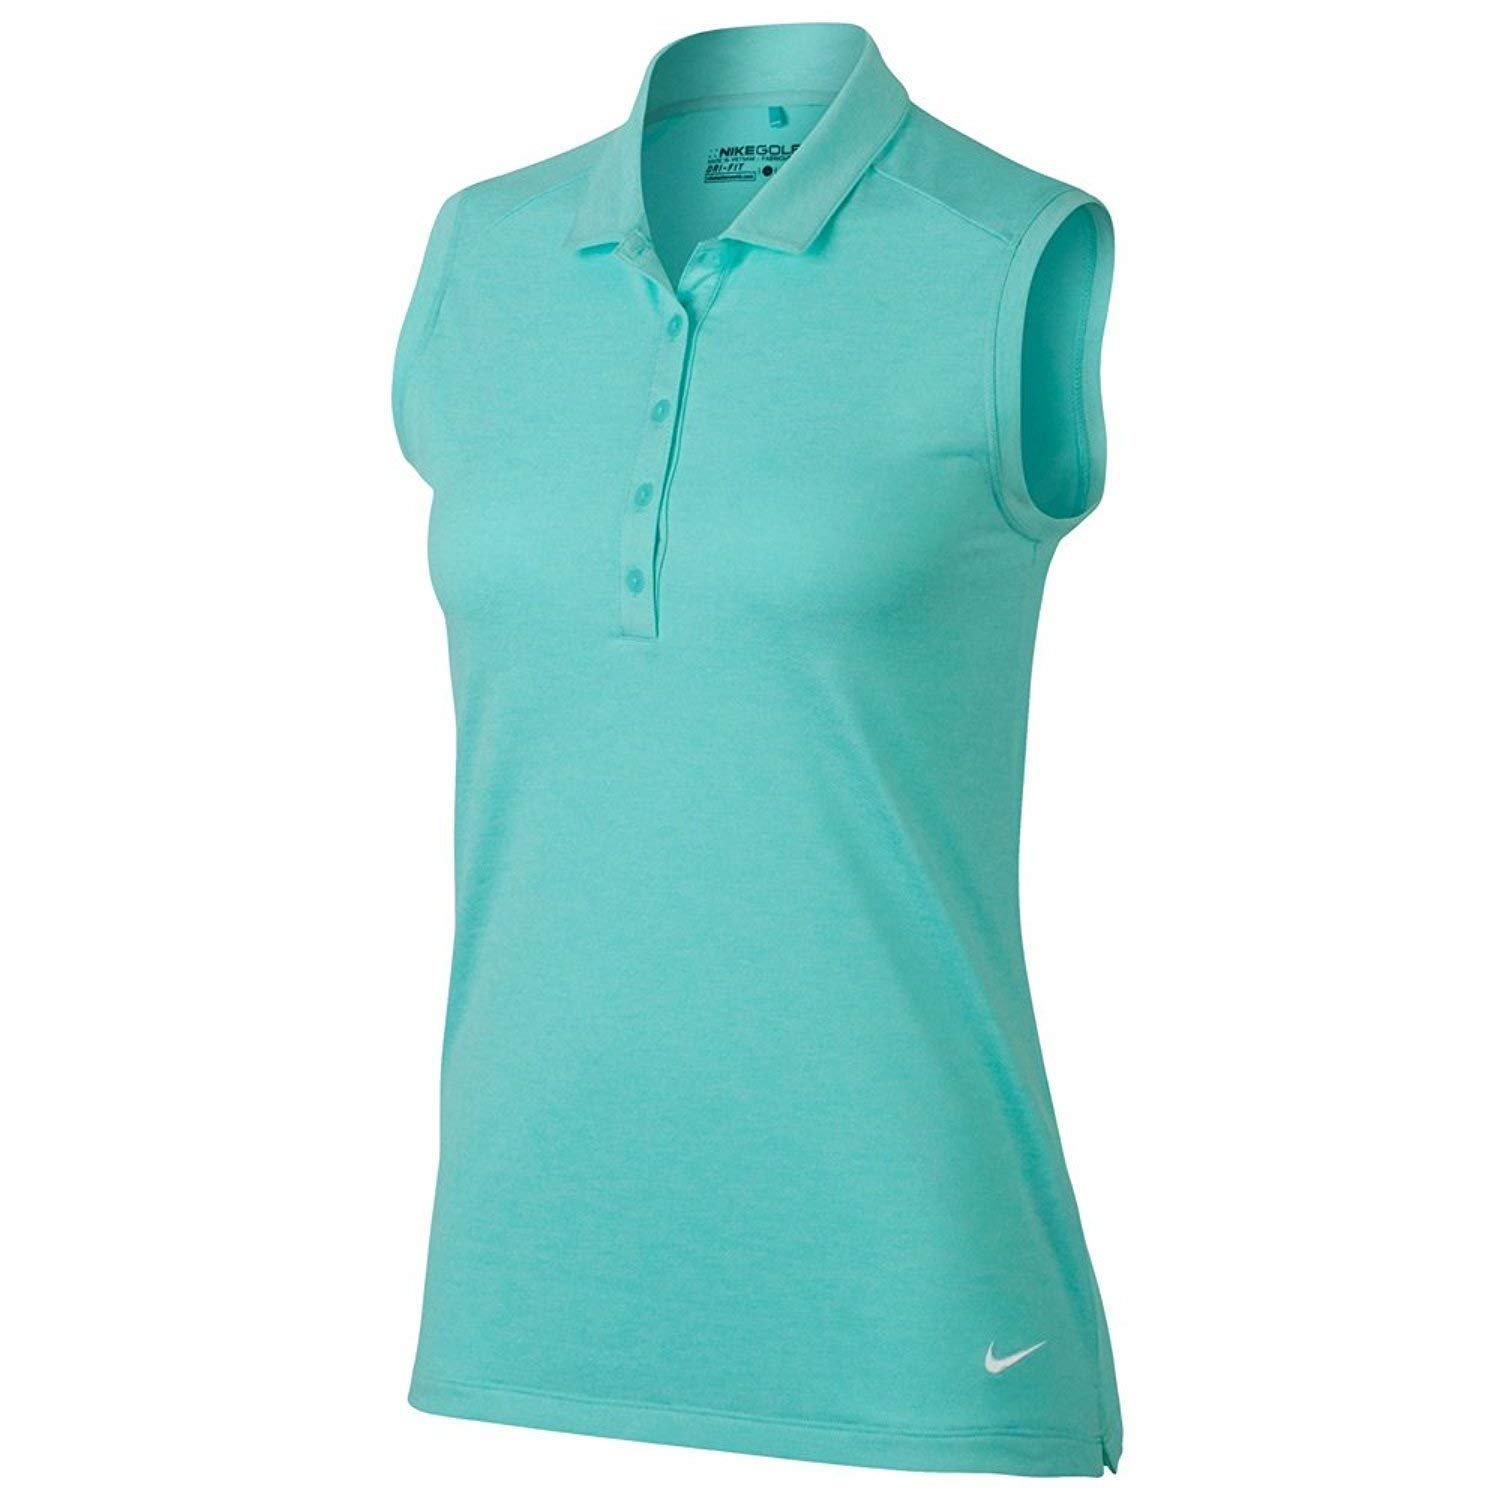 Polo de golf Nike Heather sin mangas para mujeres -Camiseta de ...